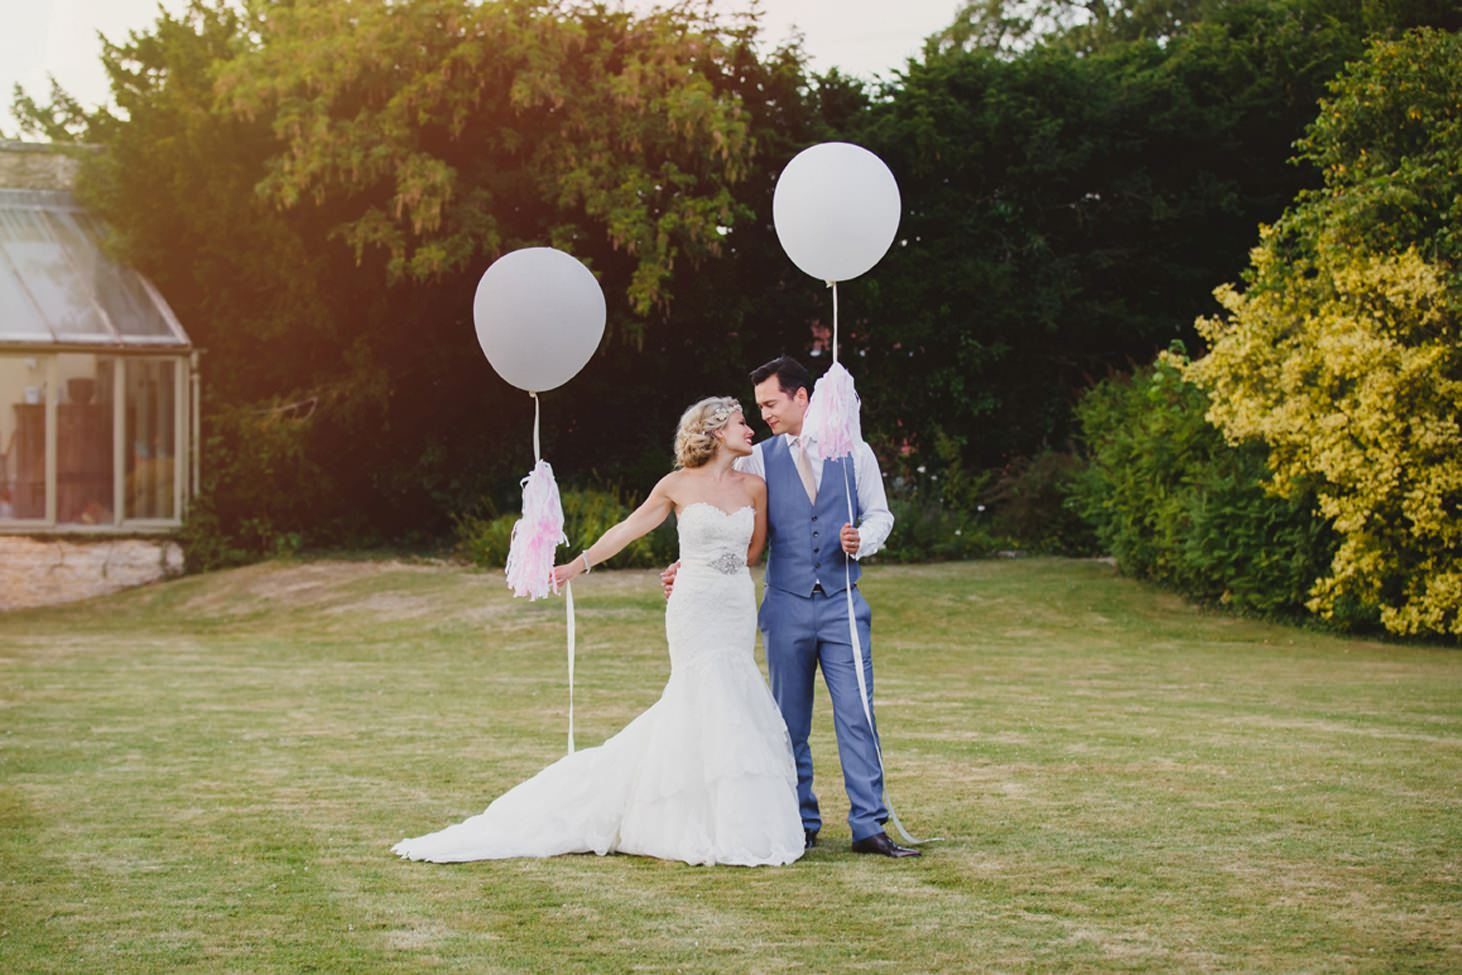 The Rectory Hotel Crudwell bride and groom with balloons